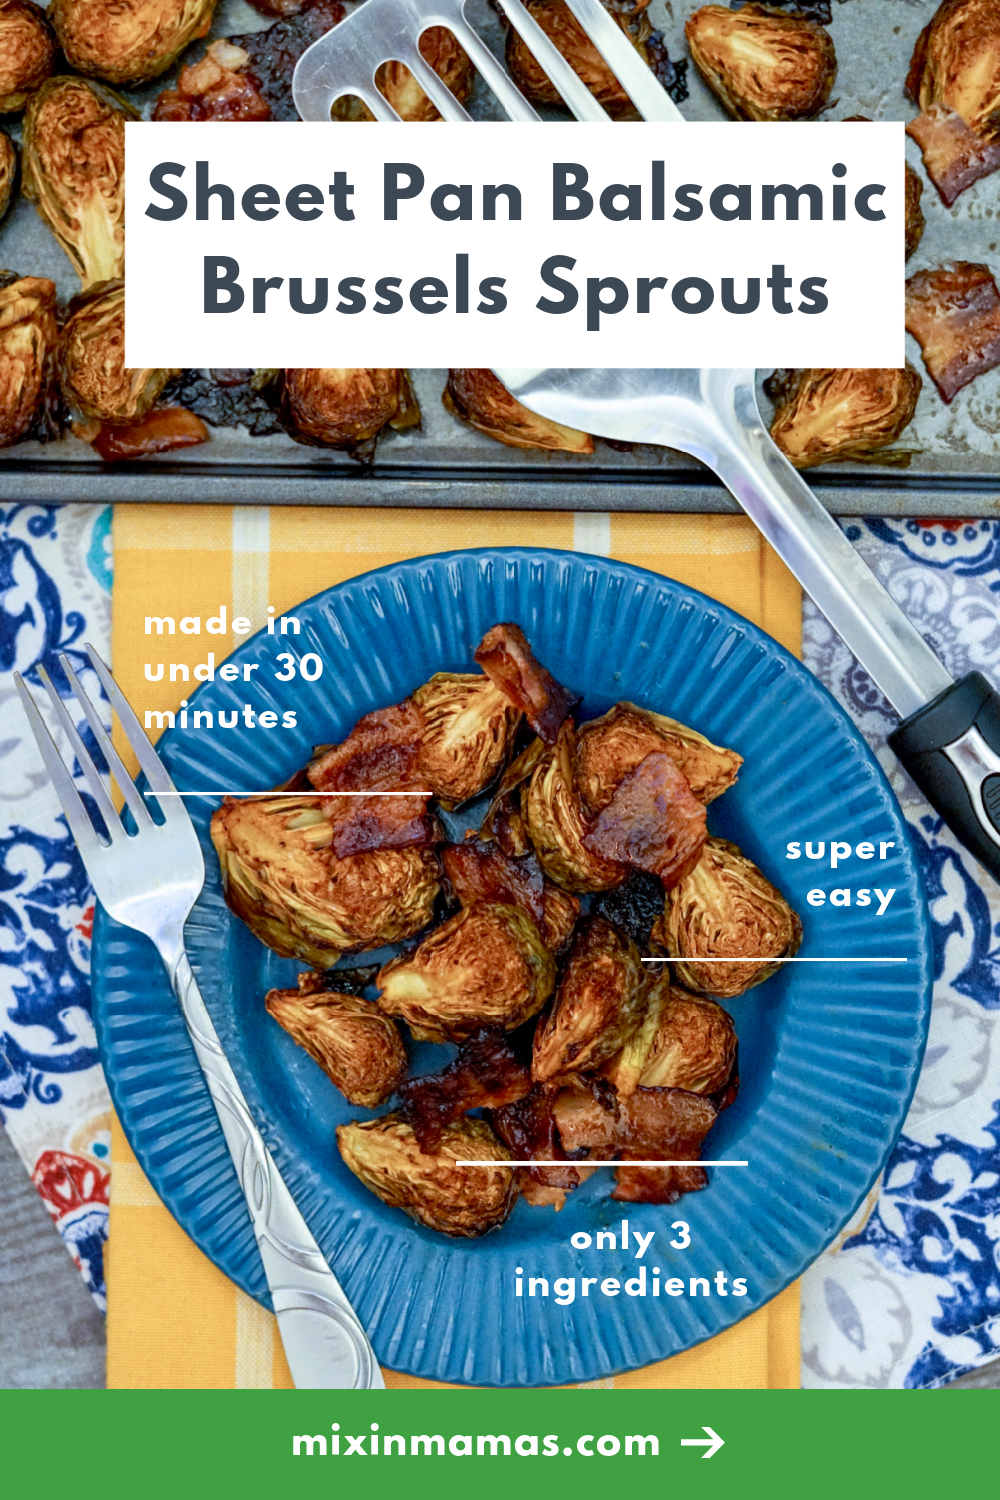 Sheet Pan Balsamic Brussels Sprouts - made in under 30 minutes; super easy; only 3 ingredients